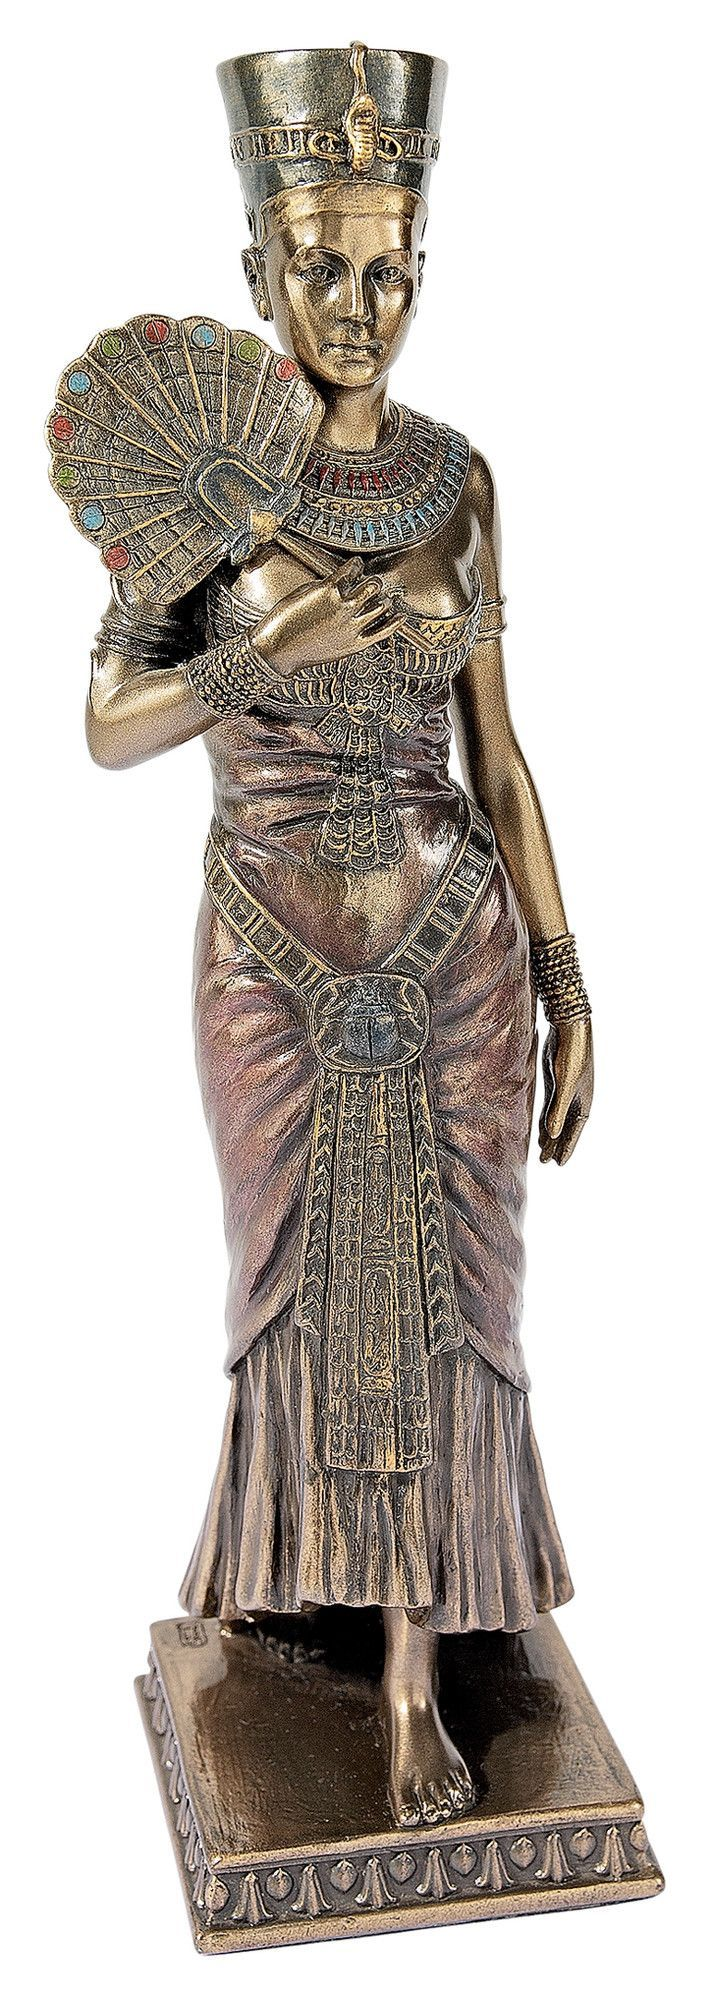 Features:  -Material: Designer resin.  -Hand painted.  Product Type: -Statue.  Theme: -Historic.  Subject: -People.  Finish: -Faux bronze.  Handmade: -Yes.  Primary Material: -Resin.  Age Group: -Adul